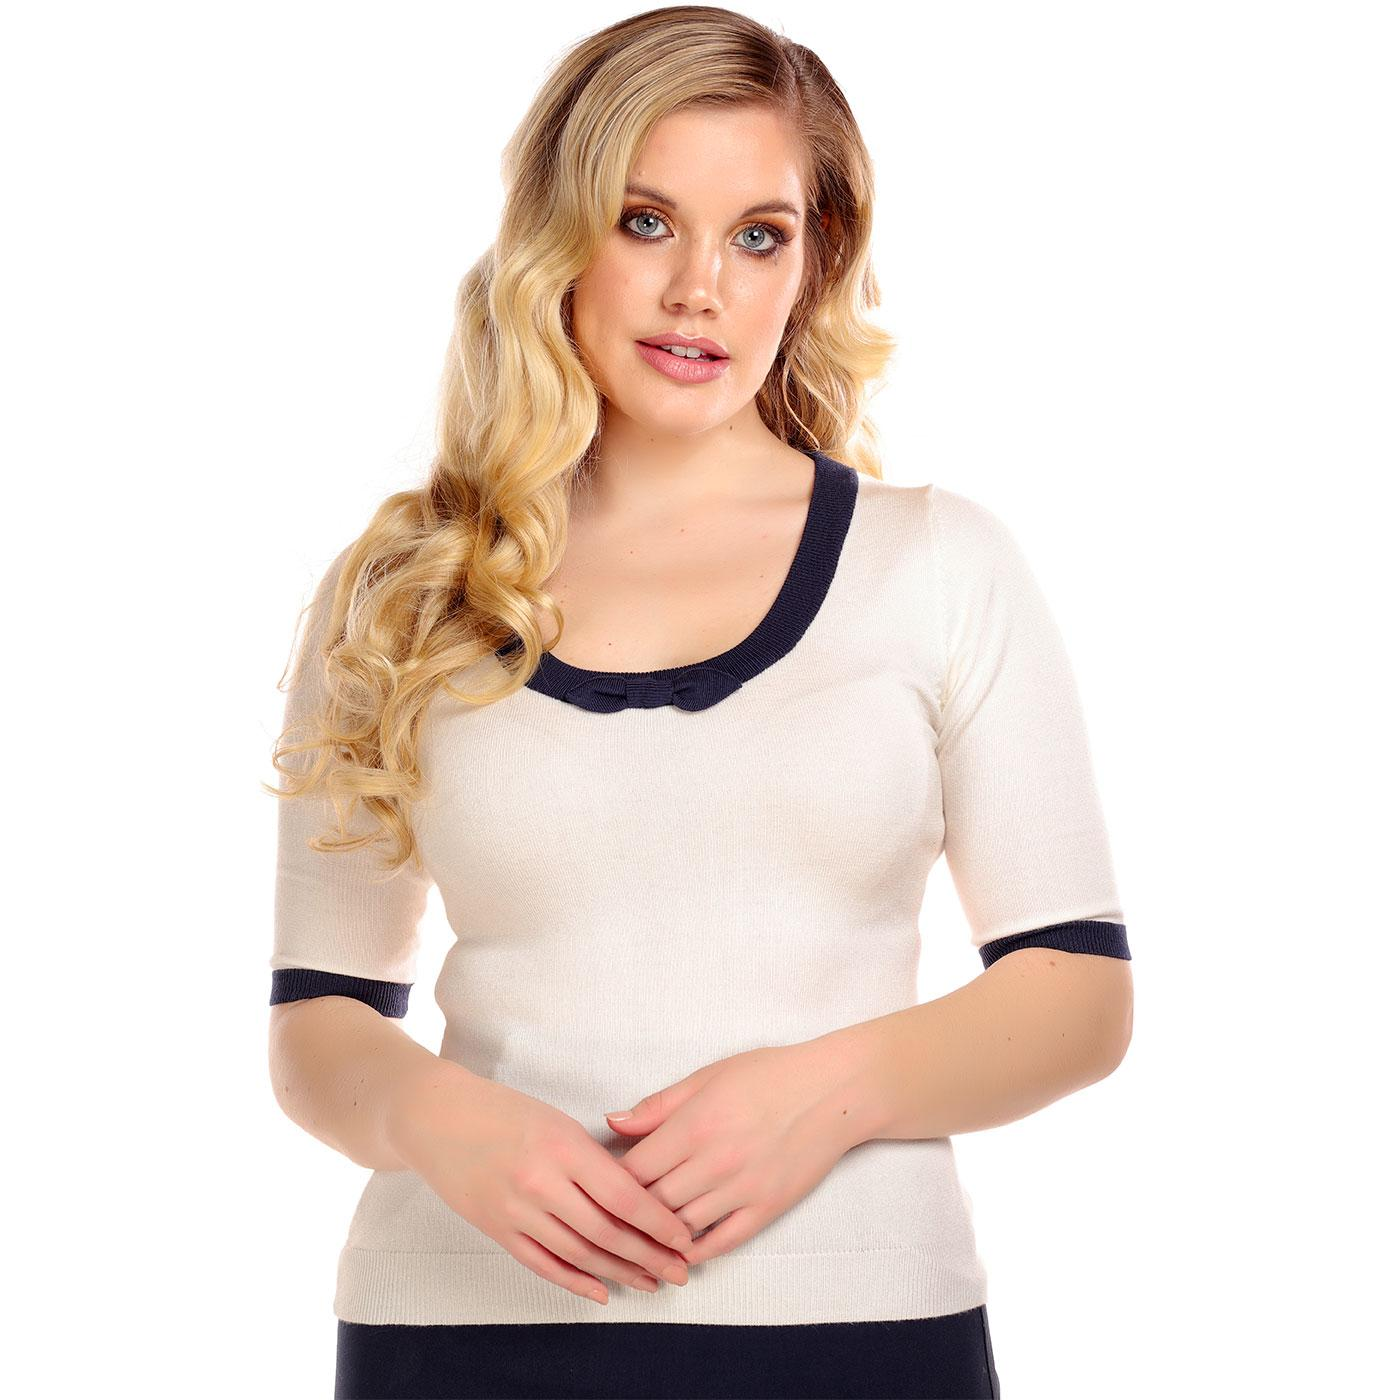 Freya COLLECTIF Vintage Knitted Bow Top IVORY/NAVY